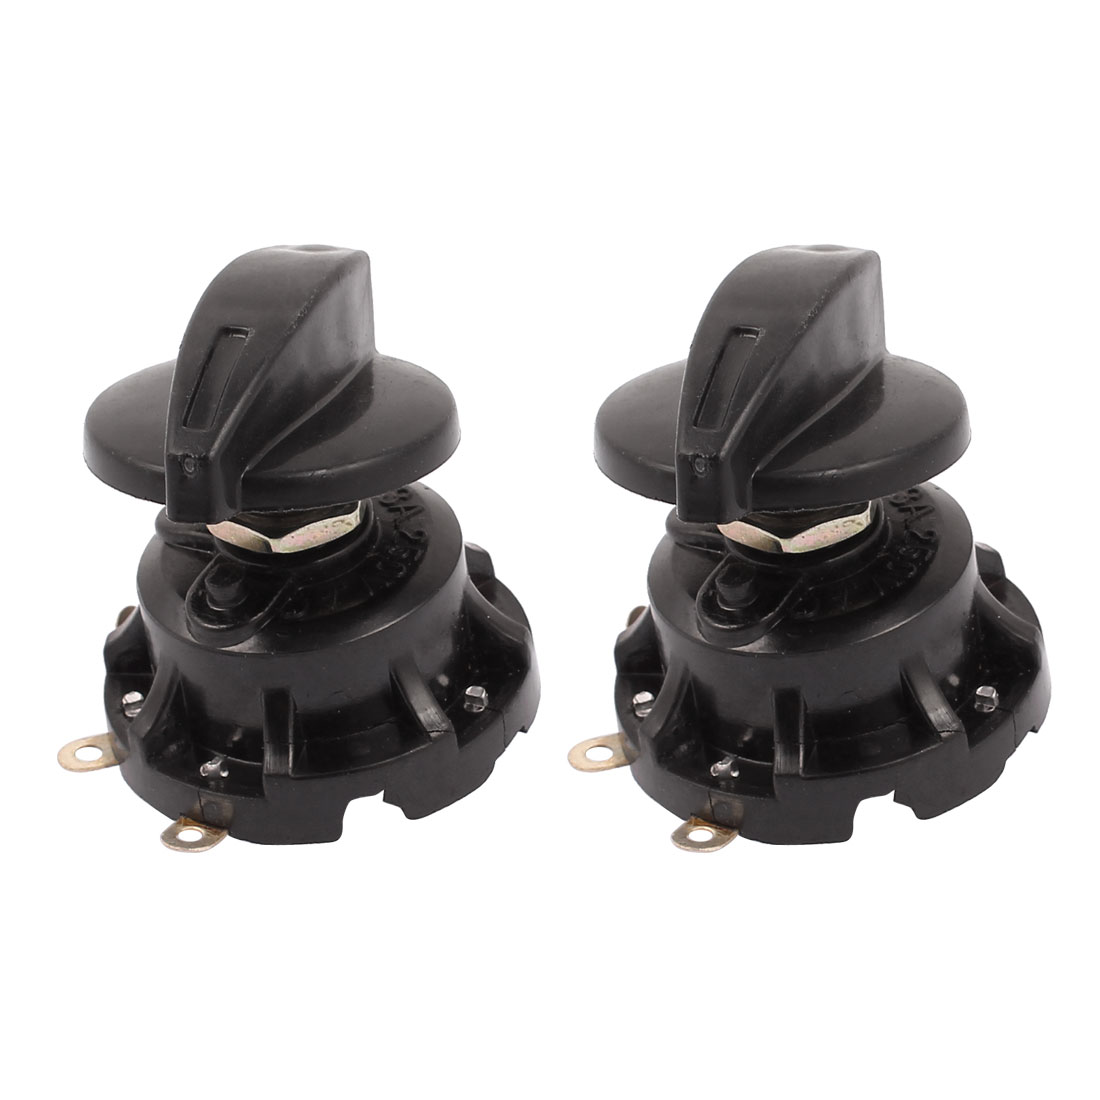 2 Pcs AC 250V 3A SPST Speed Control Switch for Electric Fan Black Plastic